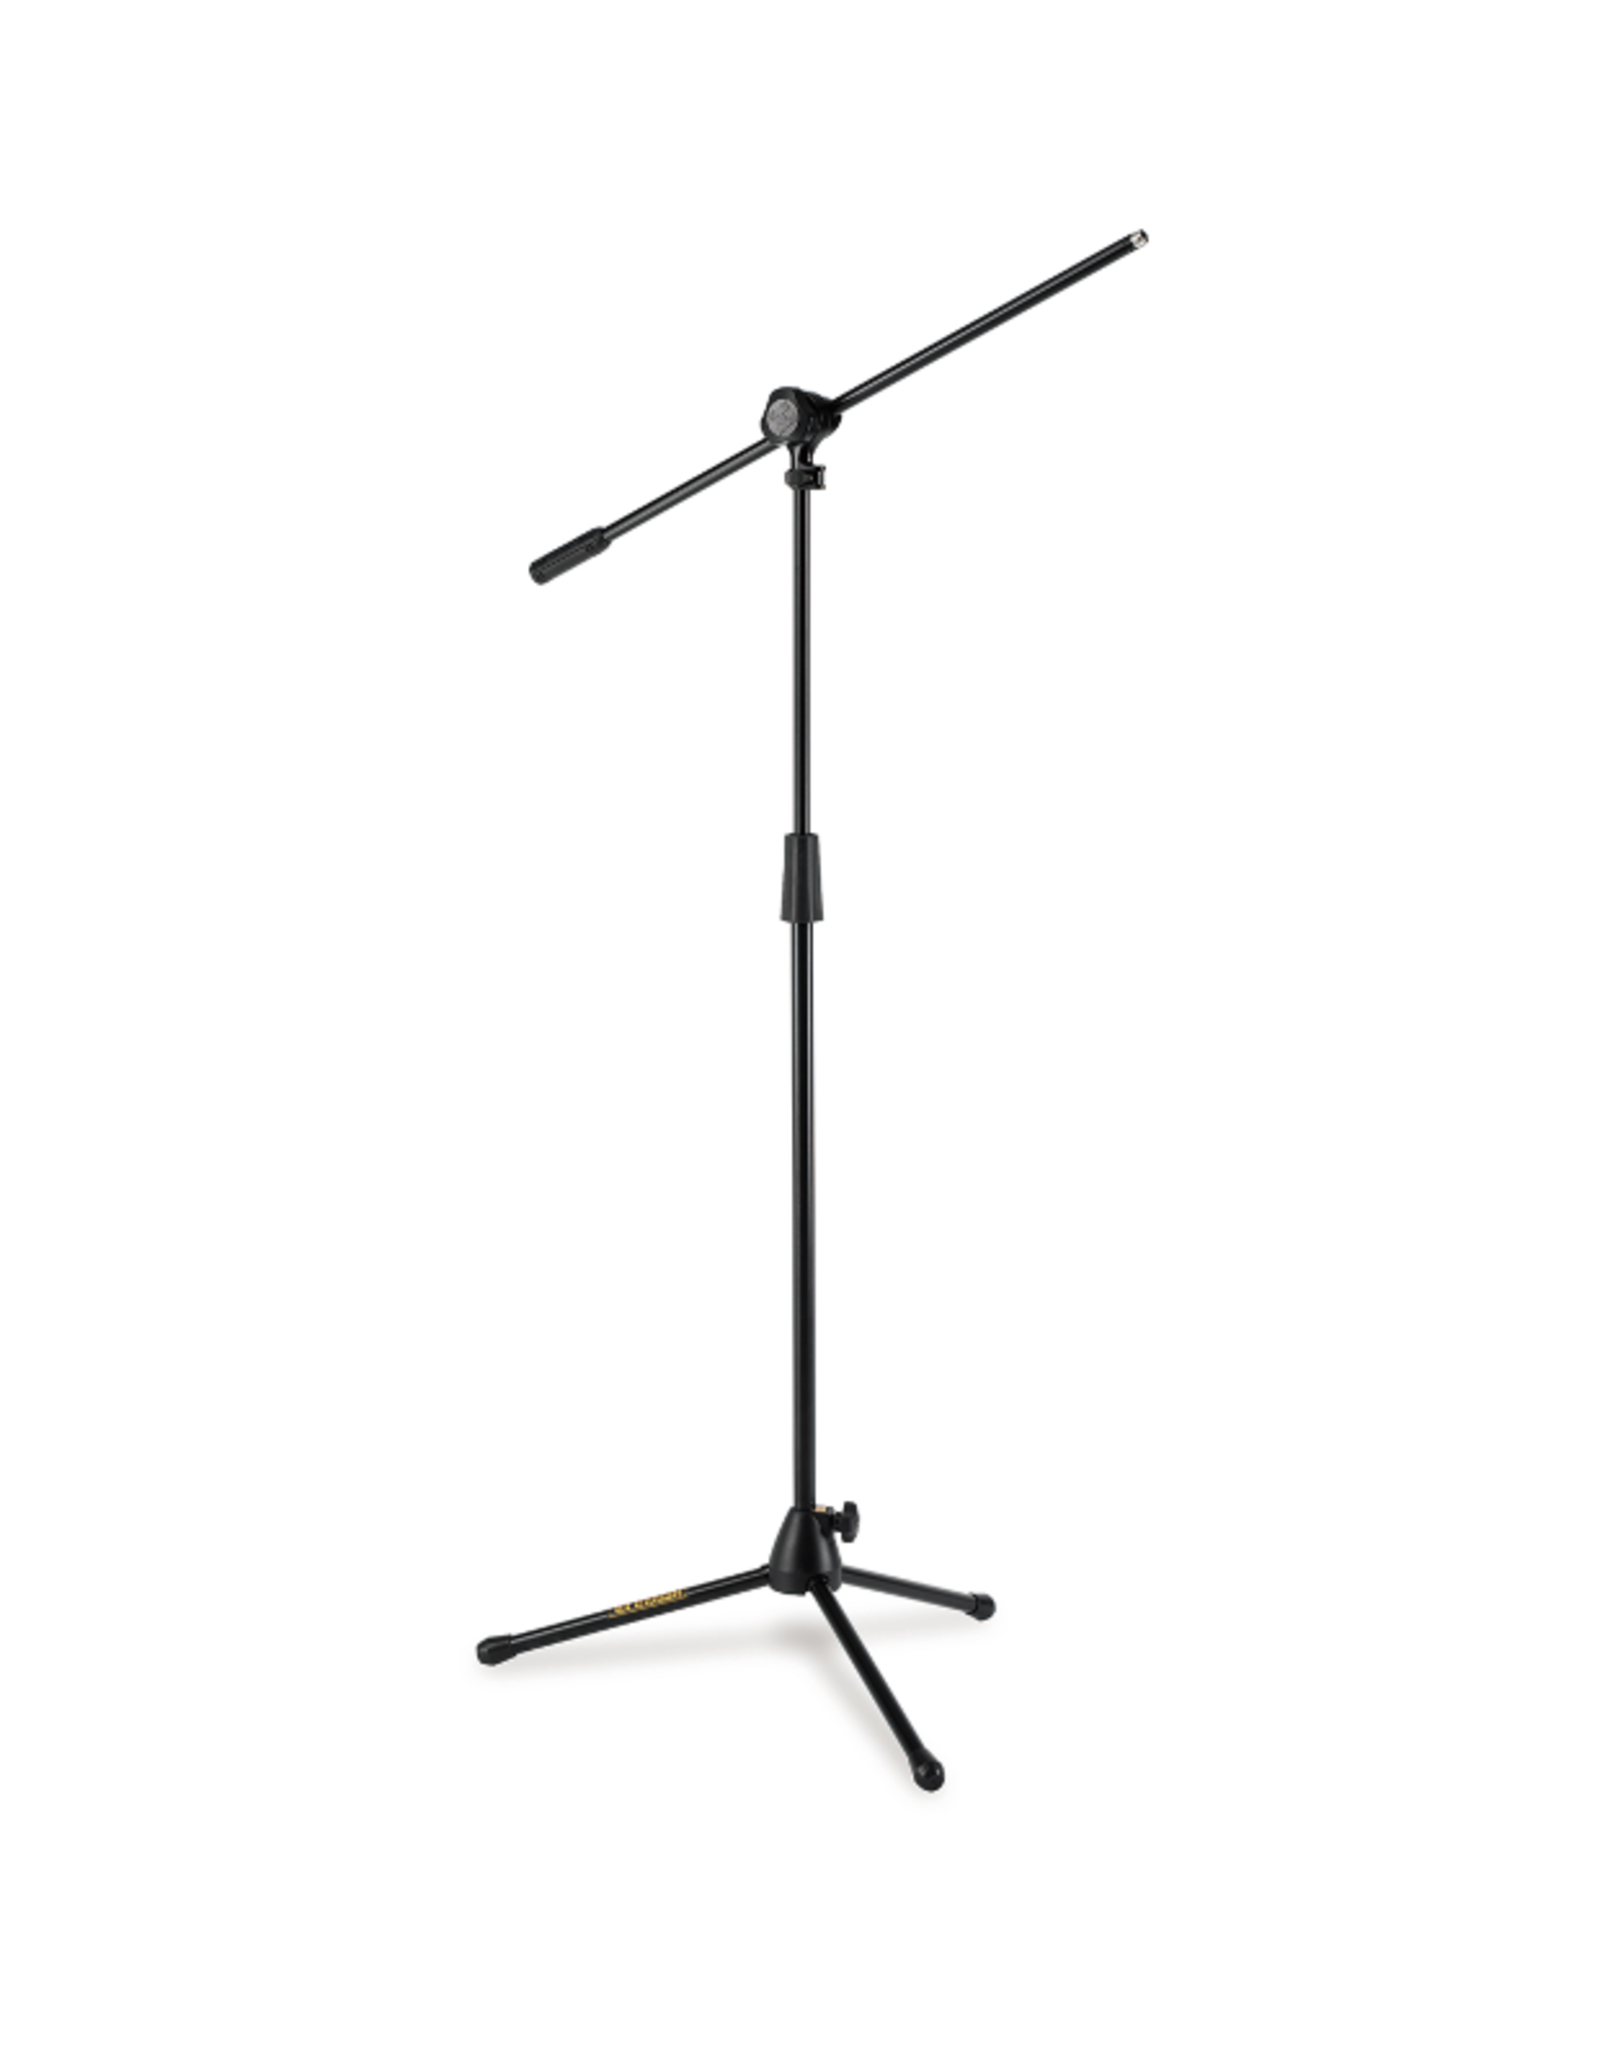 Hercules Hercules MS432B Stage Series Quick Turn Microphone Stand with 2-in-1 Boom